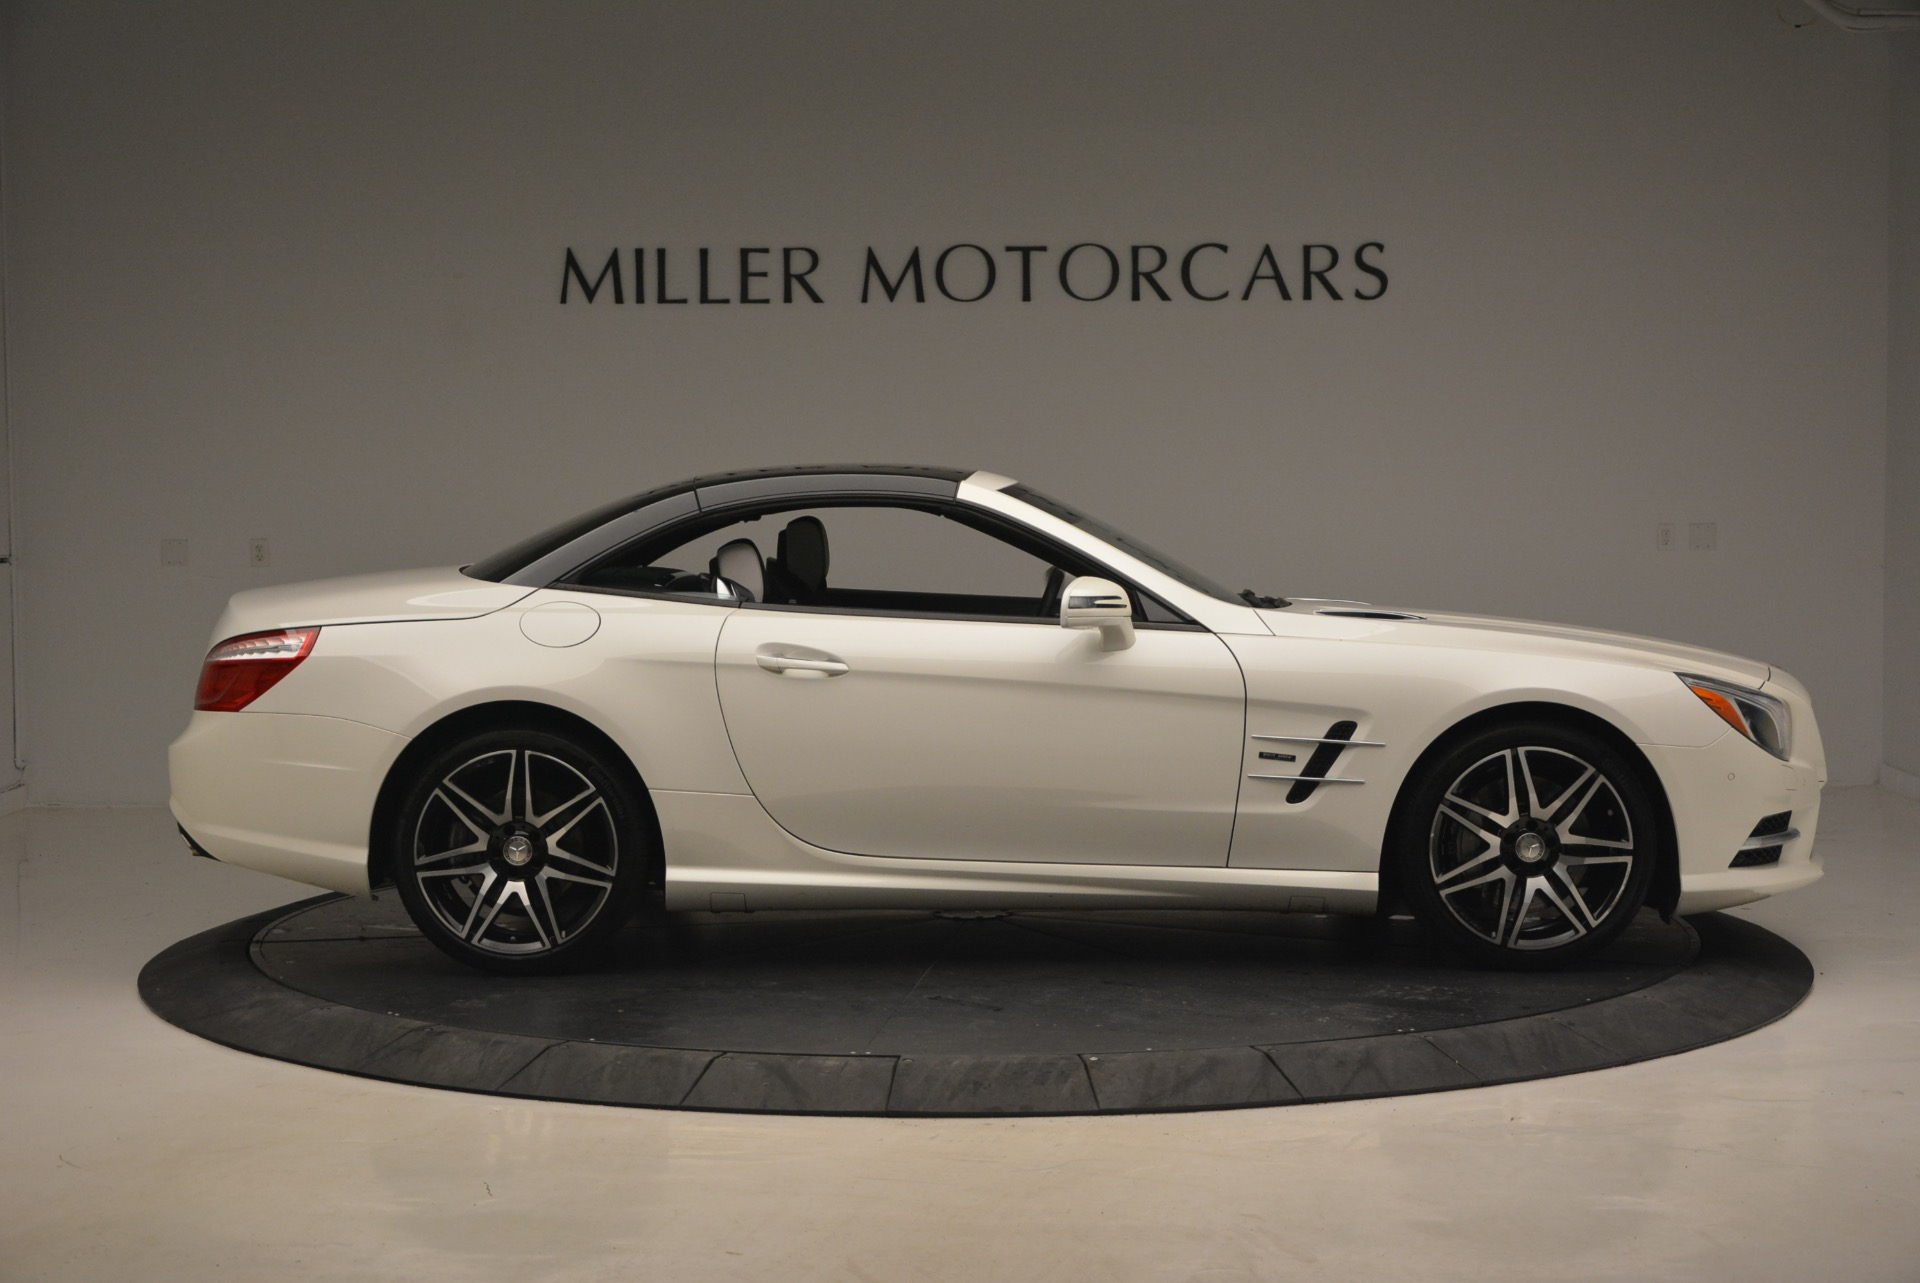 Used 2015 Mercedes Benz SL-Class SL 550 For Sale In Greenwich, CT 1261_p23